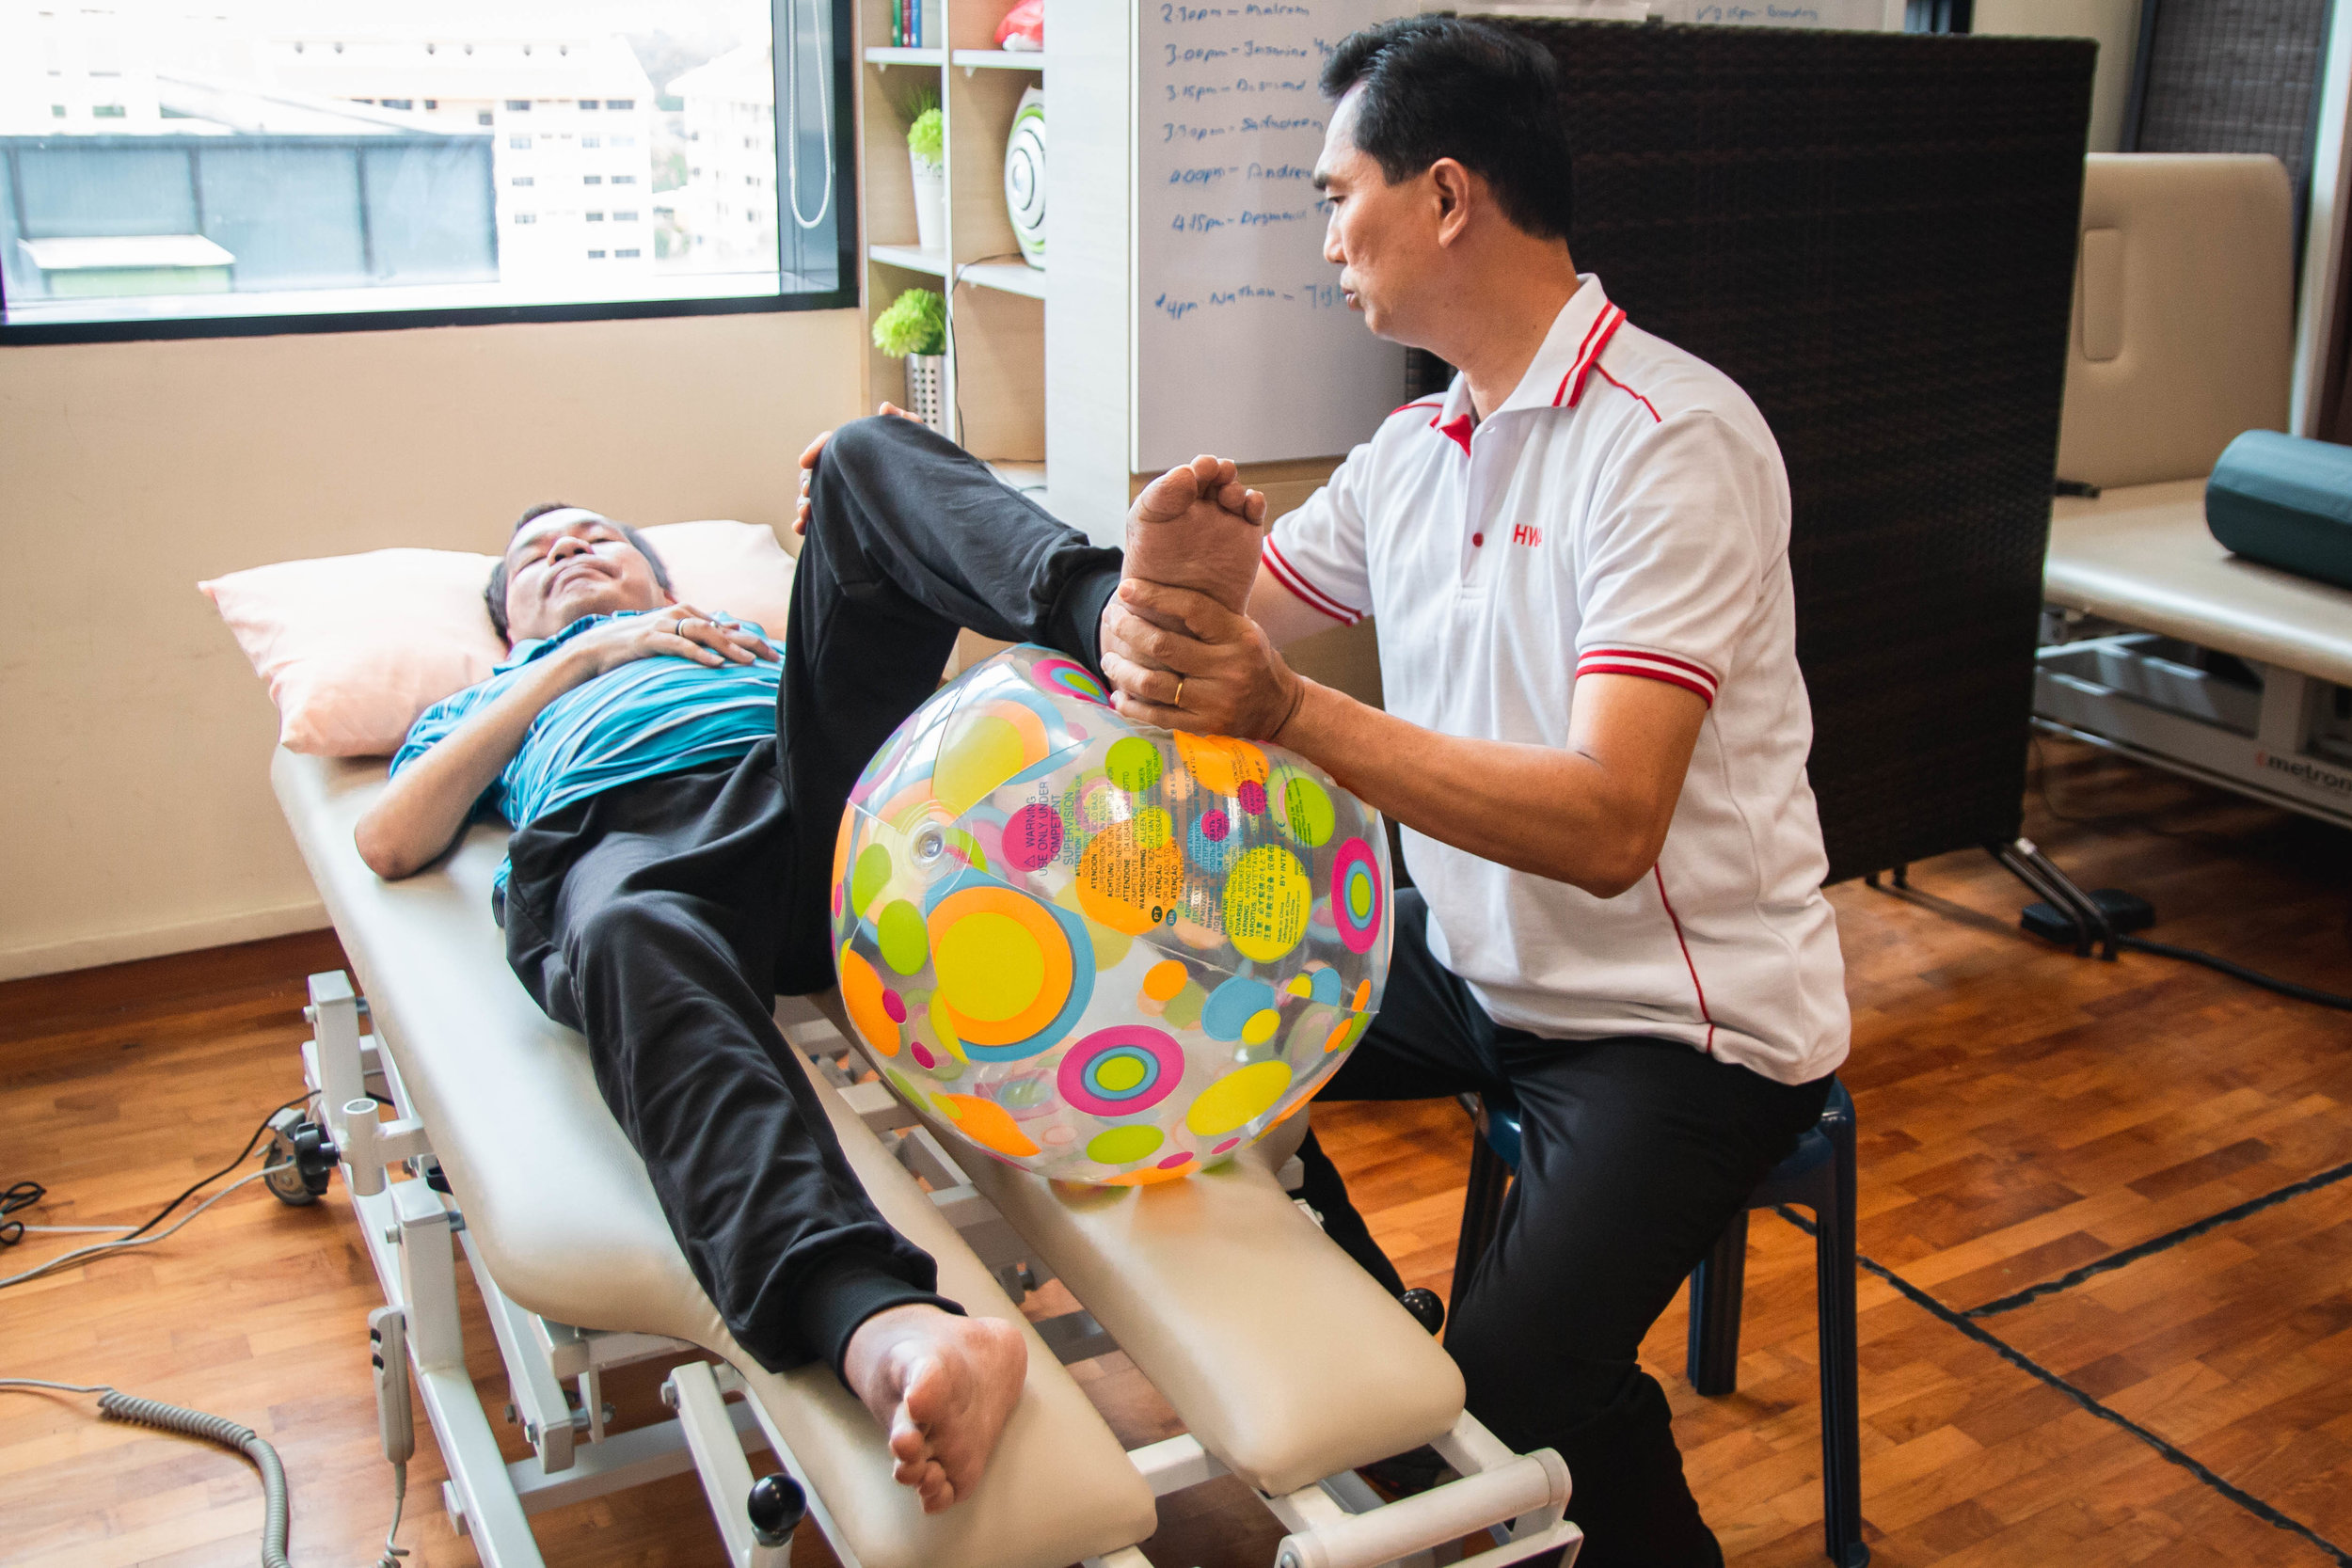 MDAS-Muscular-dystrophy-association-singapore-therapy